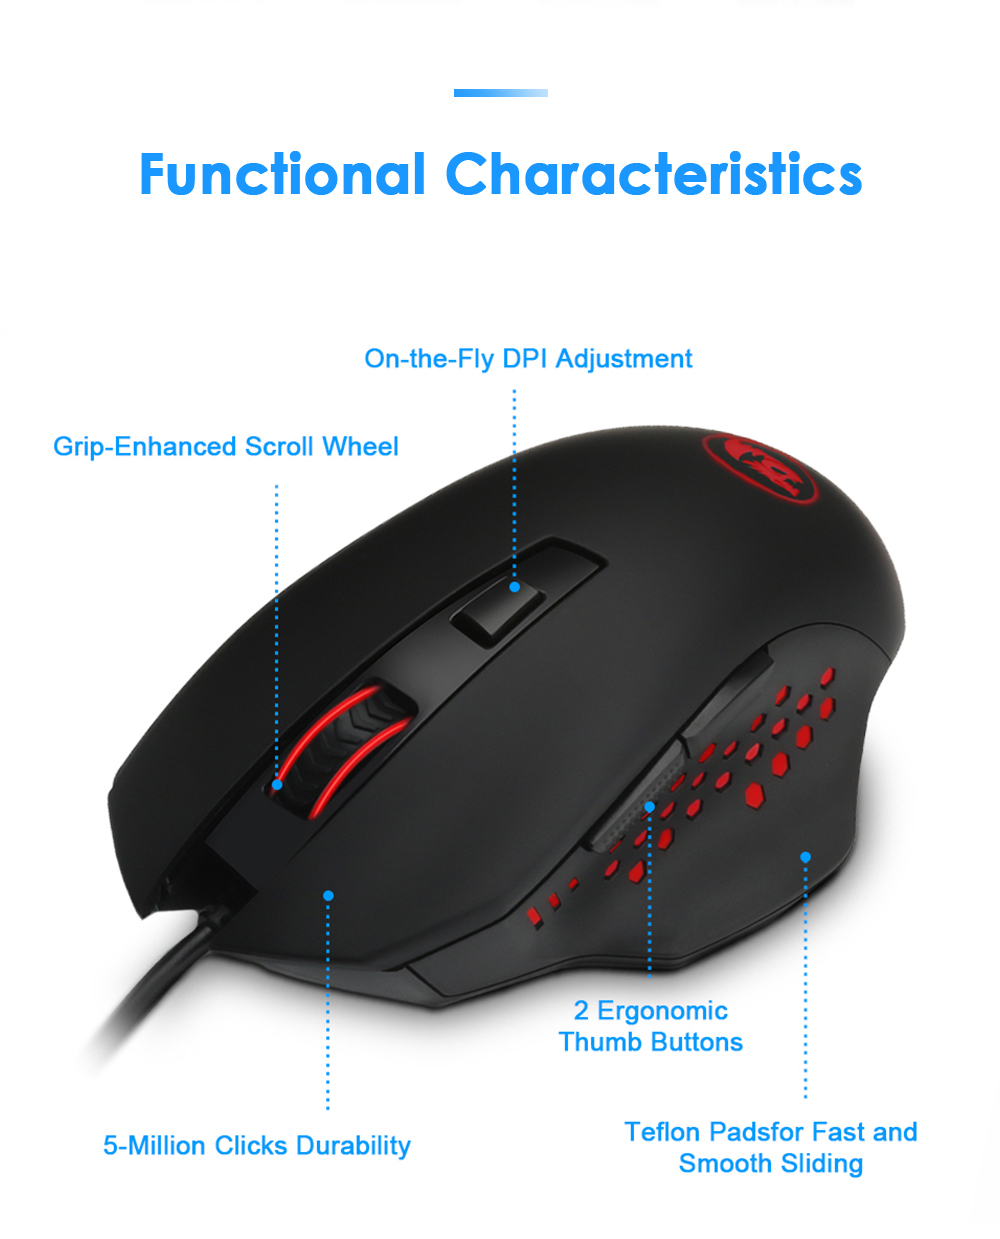 RedDragon® High Quality USB Gaming Mouse 3200 DPI 6 Buttons Ergonomic Design